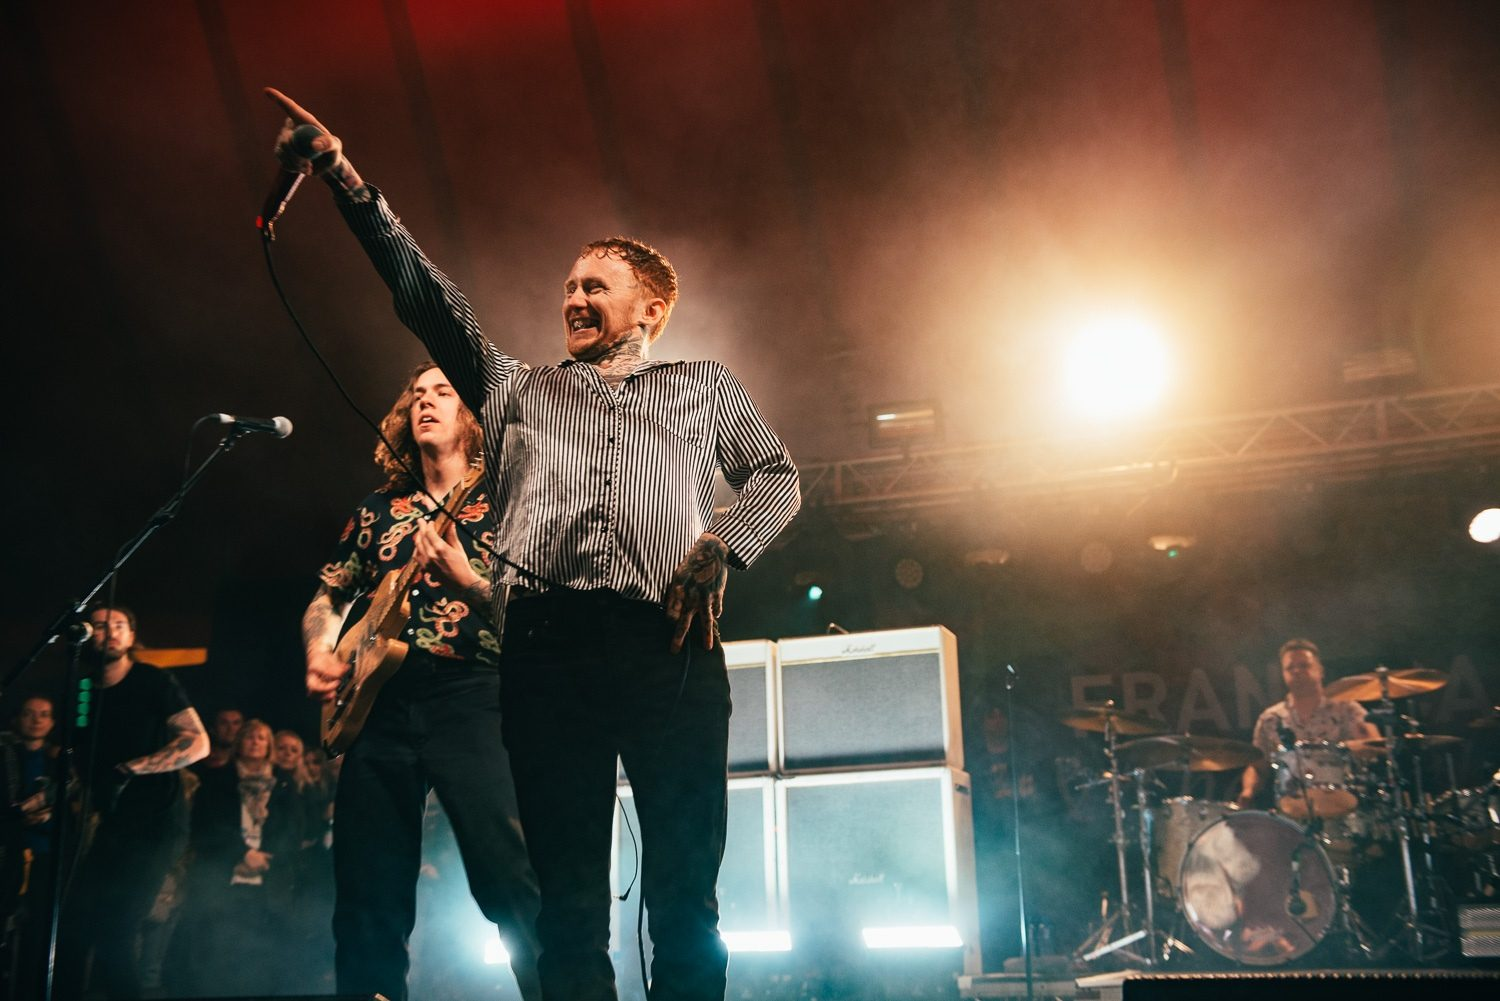 Frank Carter takes Reading 2018 by surprise with a set on The Pit Stage